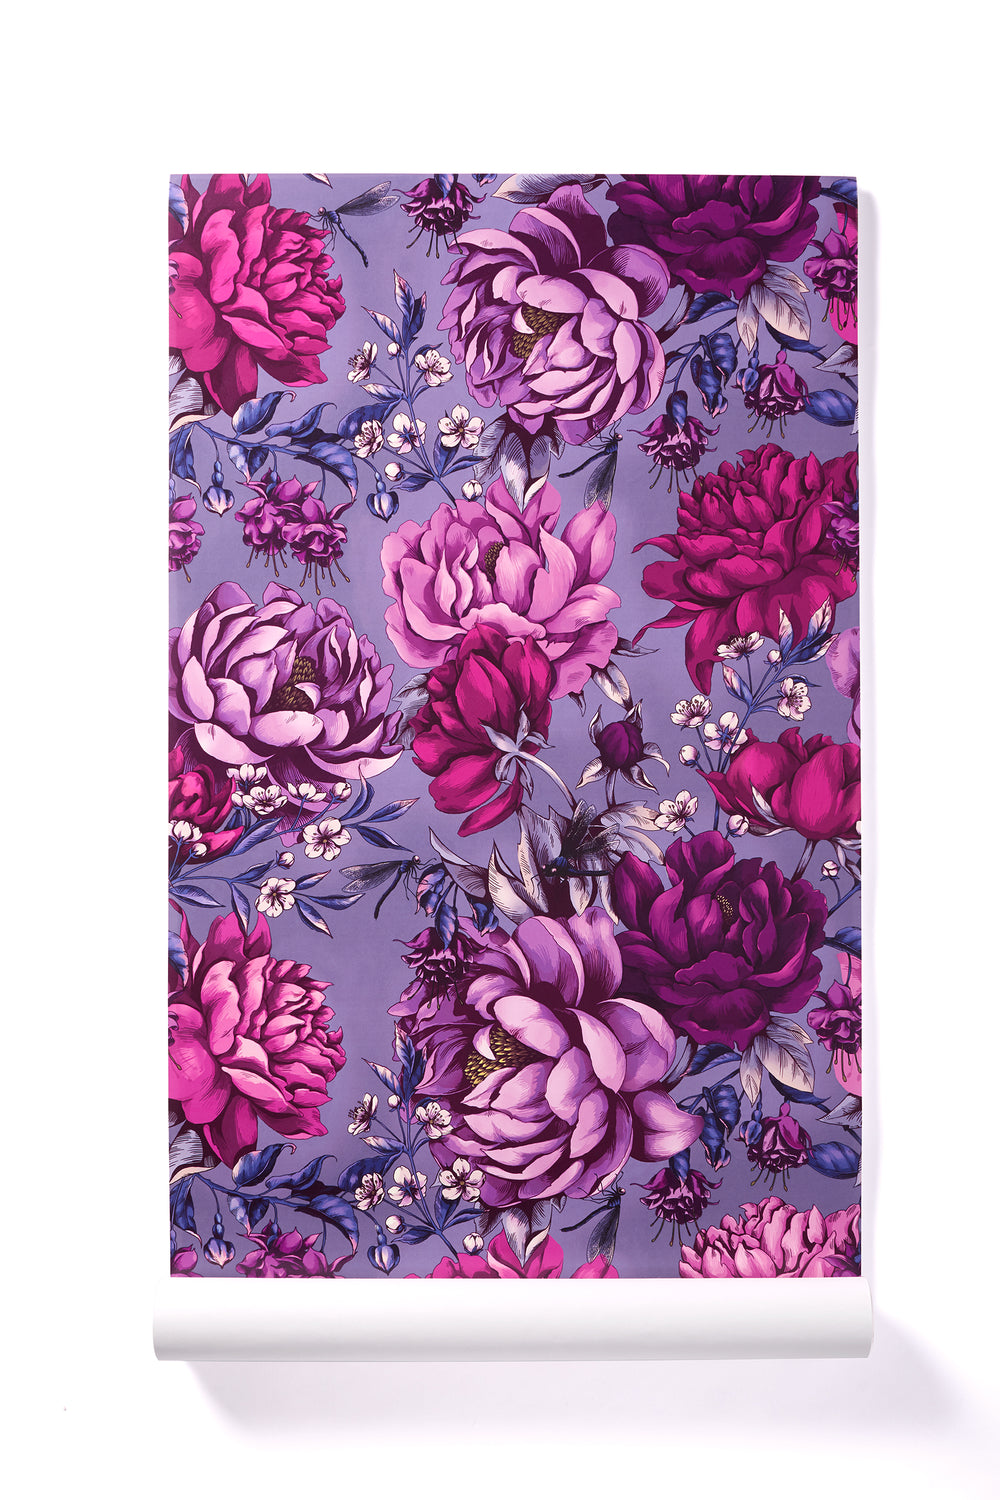 Enraptured Heart - Oversized Pink & Purple Peony Floral Wallpaper